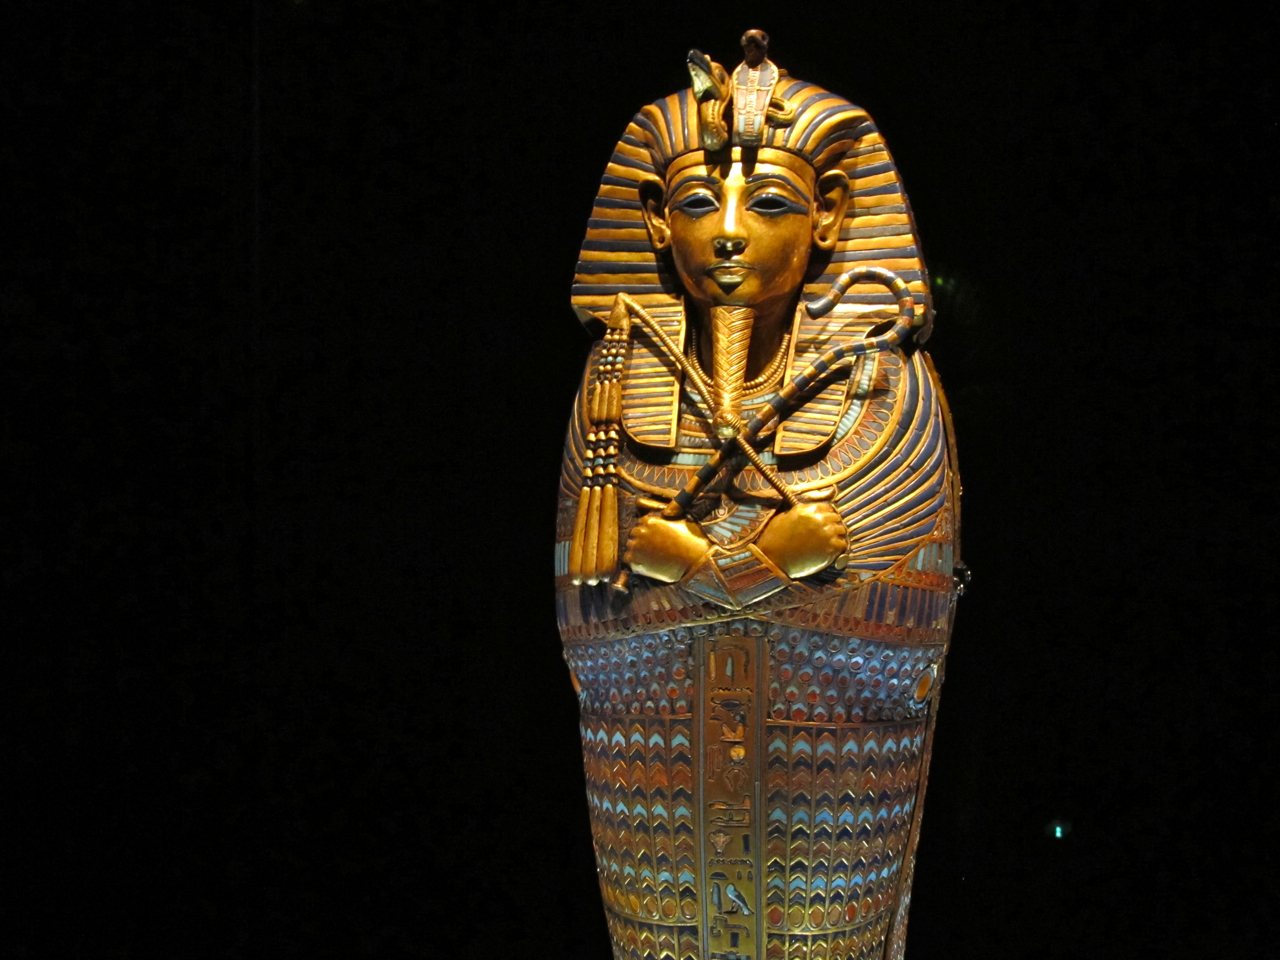 The Curse Of King Tuts Tomb Torrent: King Tut At Pacific Science Center